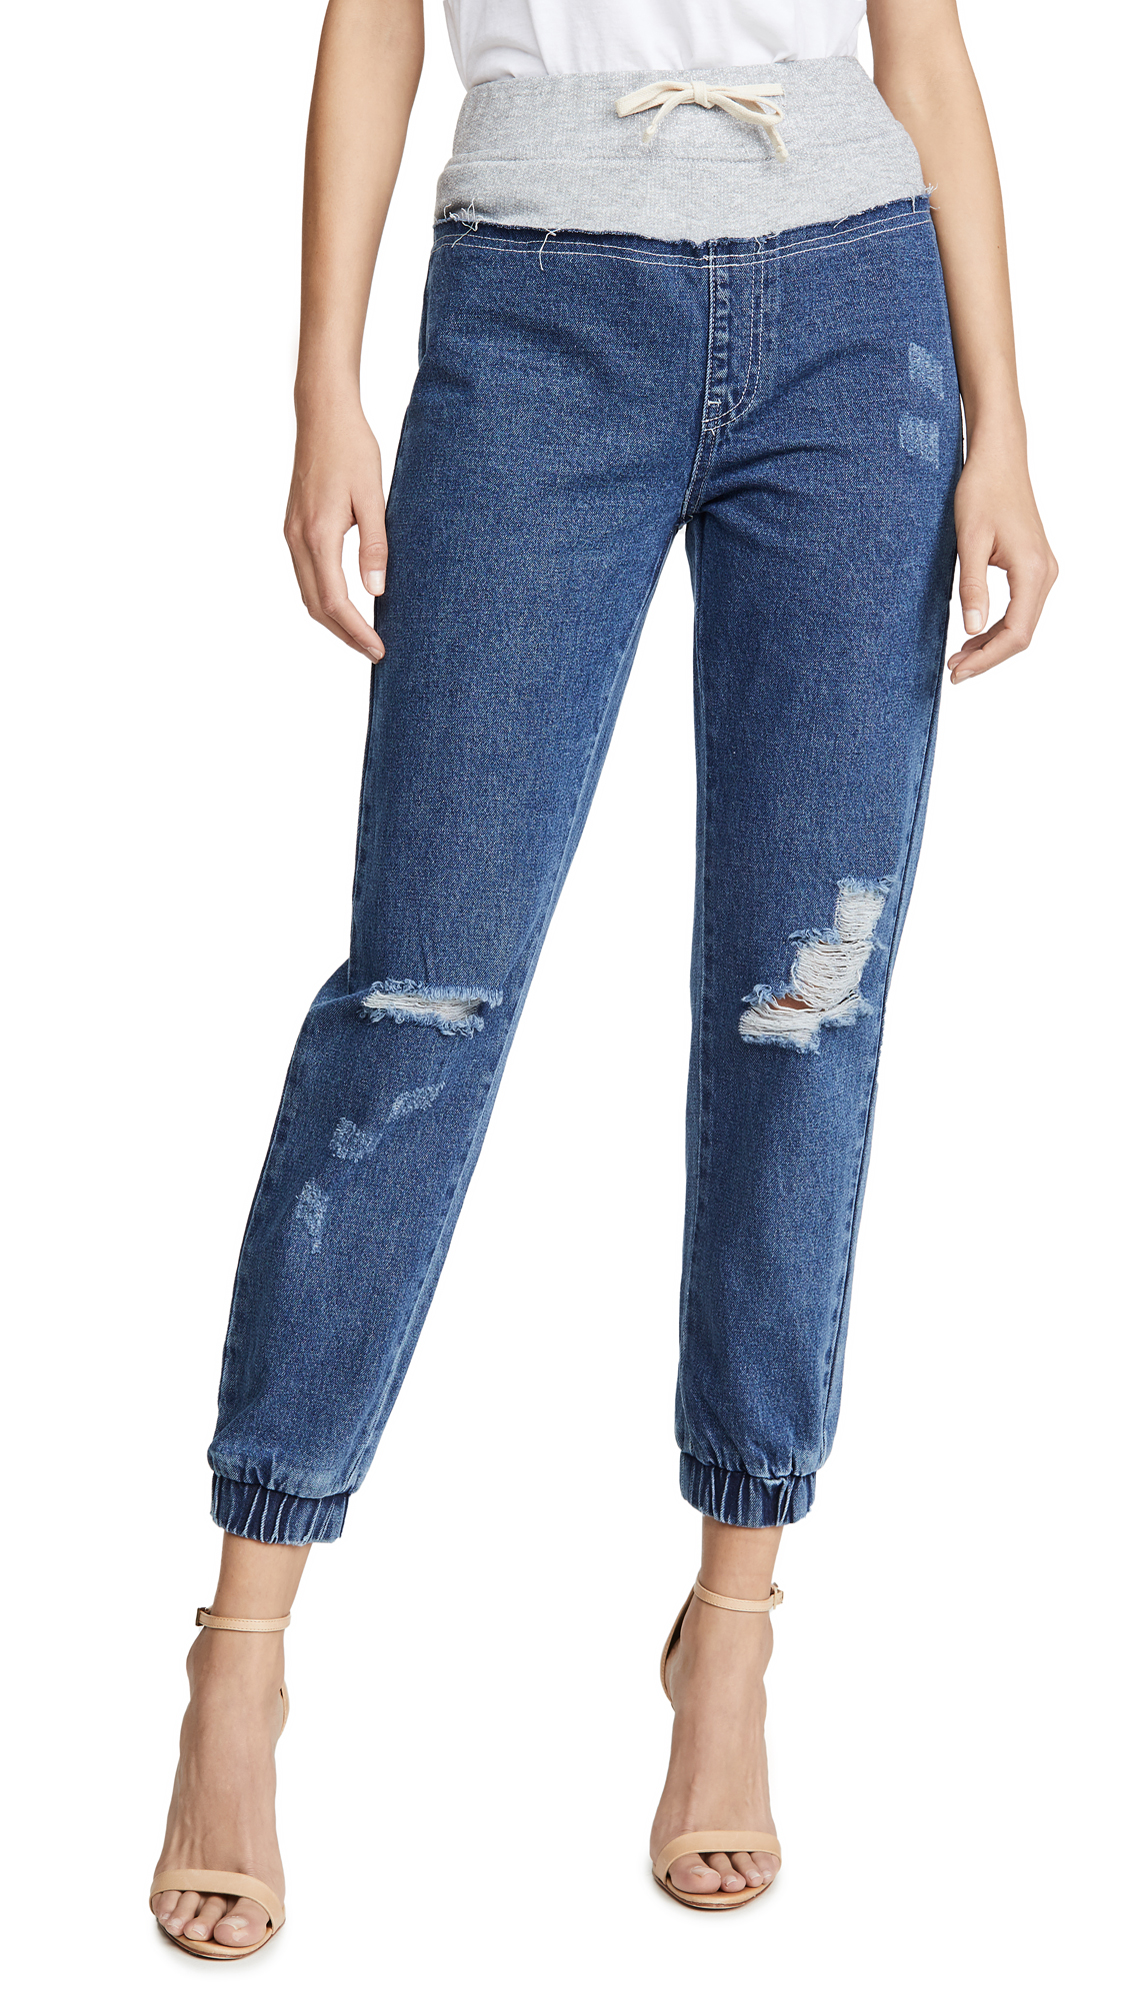 Kendall + Kylie French Terry Yoke Jeans In Medium Wash